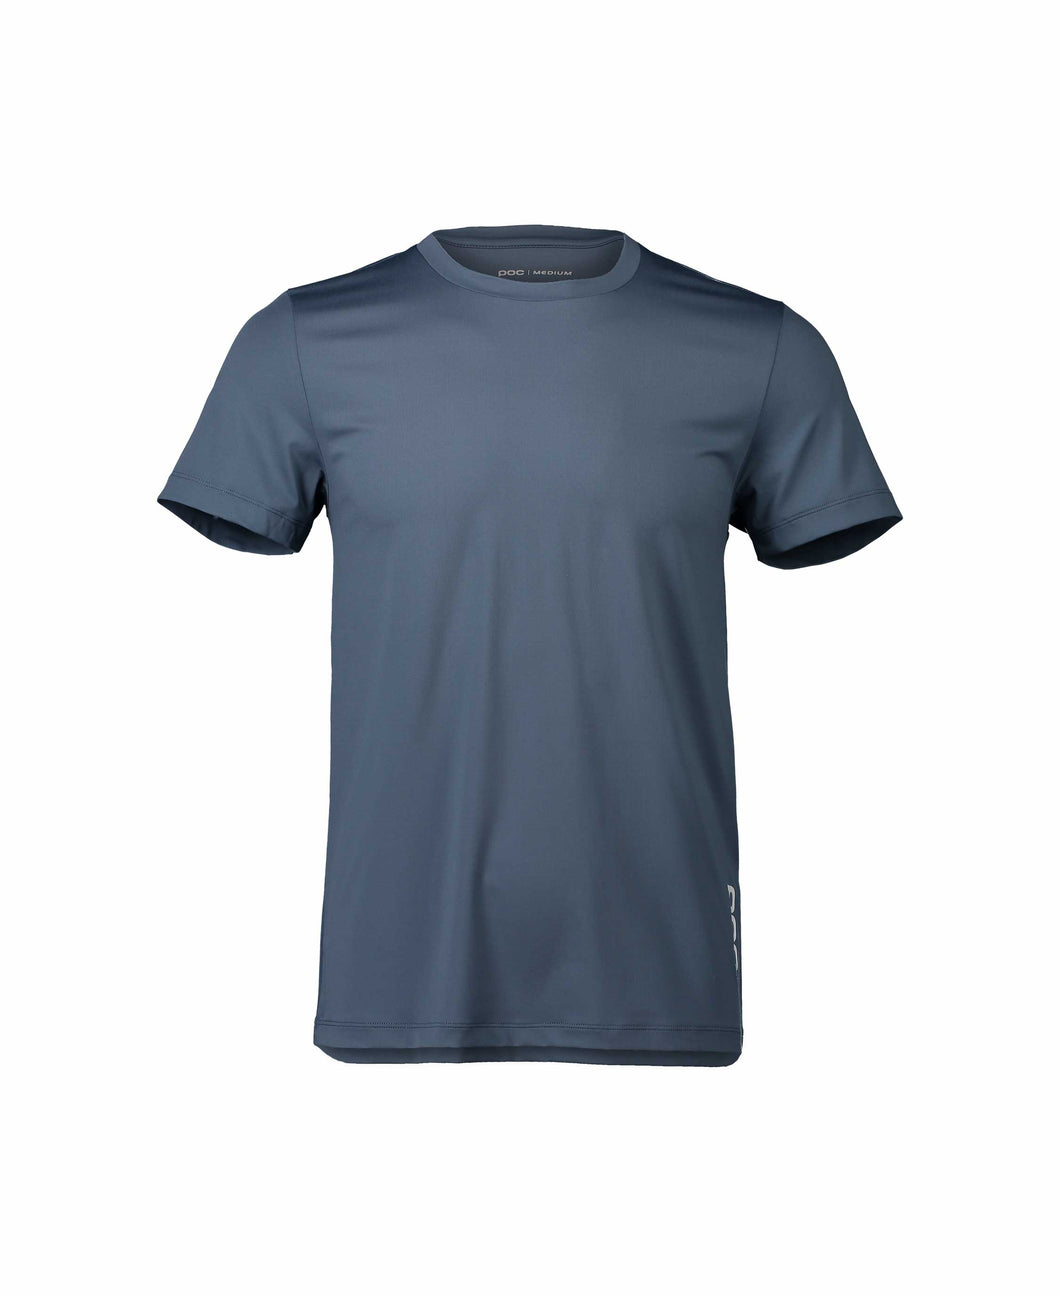 Tシャツ Essential Enduro Light Tee - Calcite Blue [ユニセックス] 52732-1584 - STYLE BIKE ONLINE SHOP